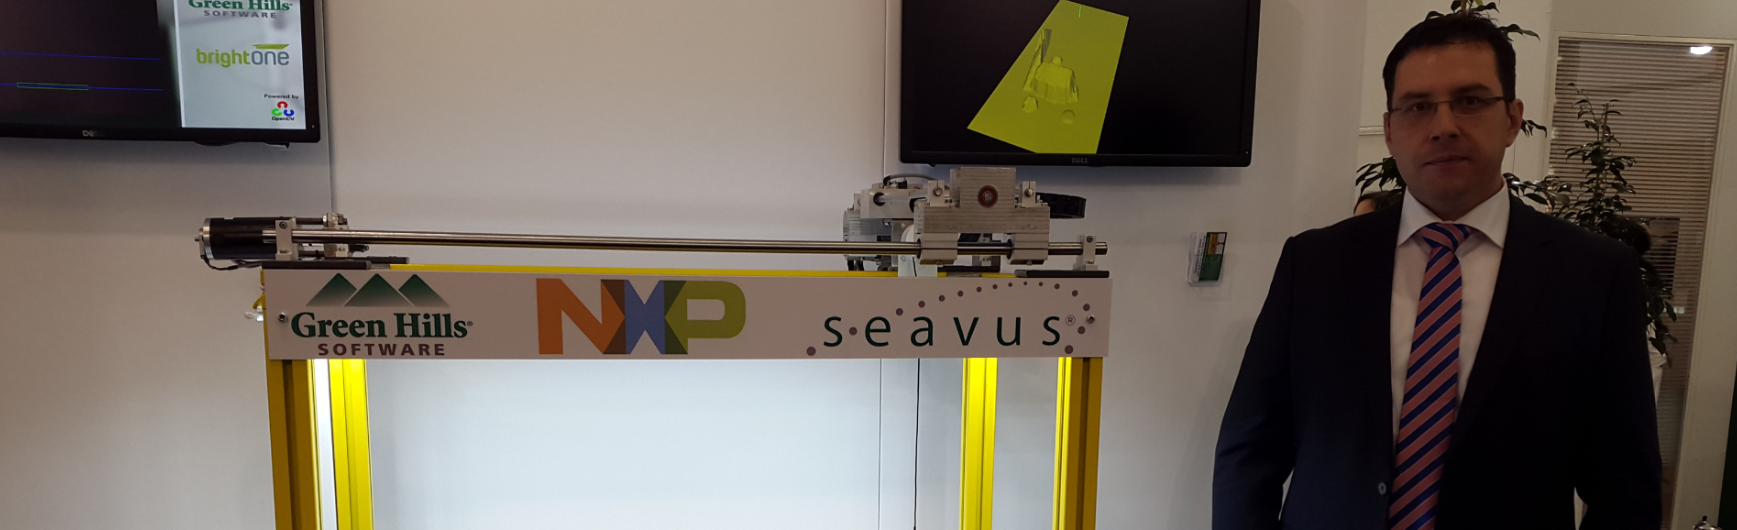 SEAVUS AT THE EMBEDDED WORLD 2016 IN GERMANY